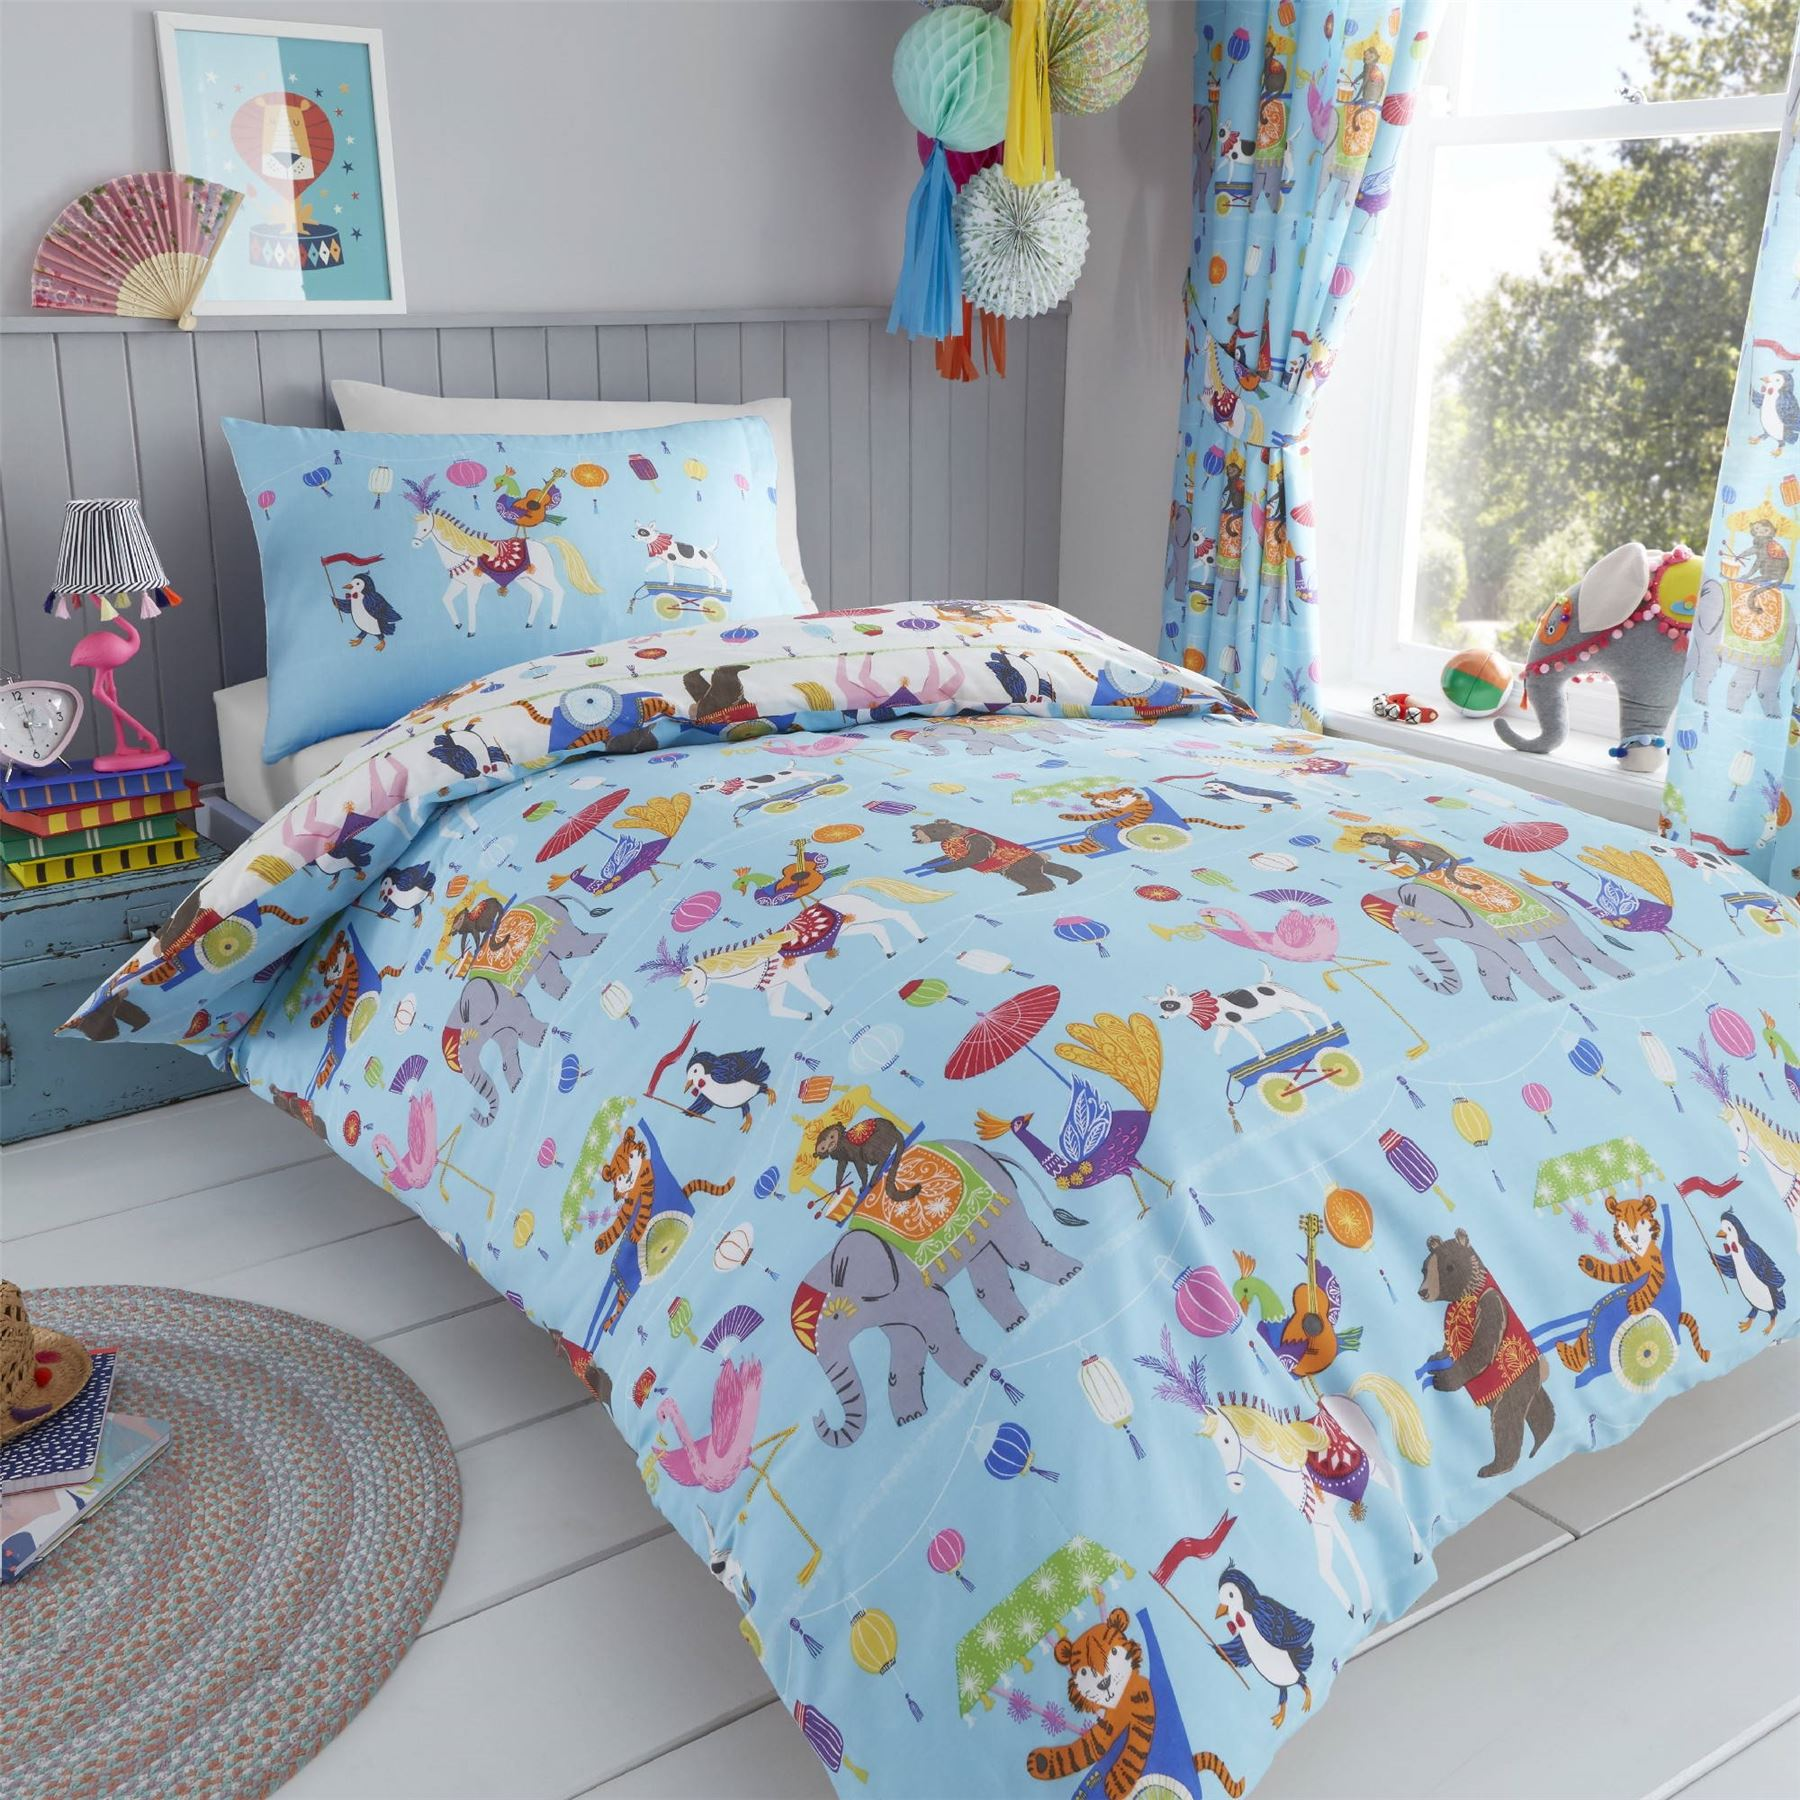 Hlc Boys Girls Circus Animals Lion King Blue White Duvet Cover Bedding Curtains Ebay